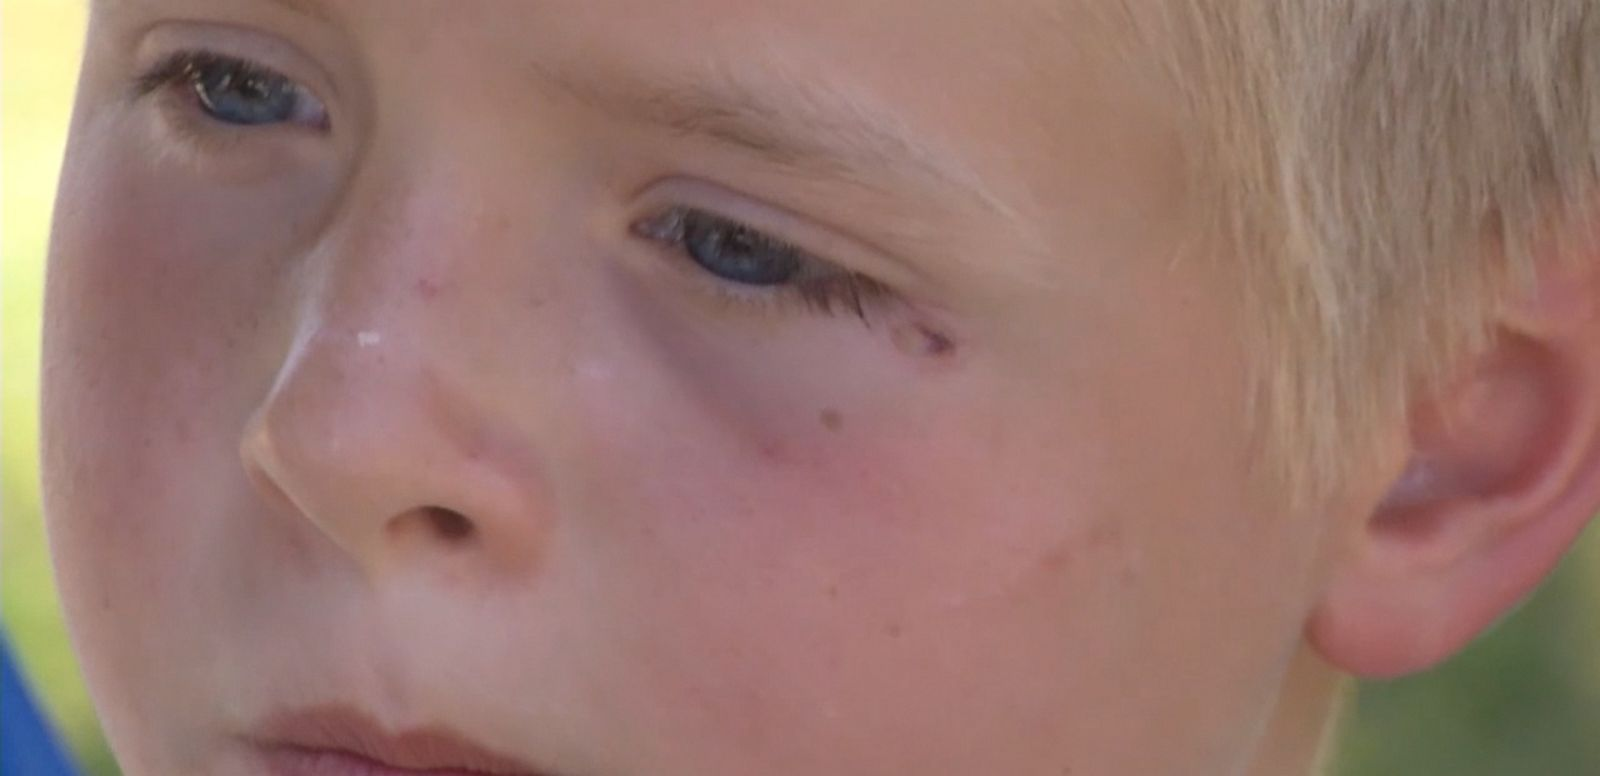 A 9-year-old Wisconsin boy reopened his lemonade stand after being shot in the face with a BB gun.